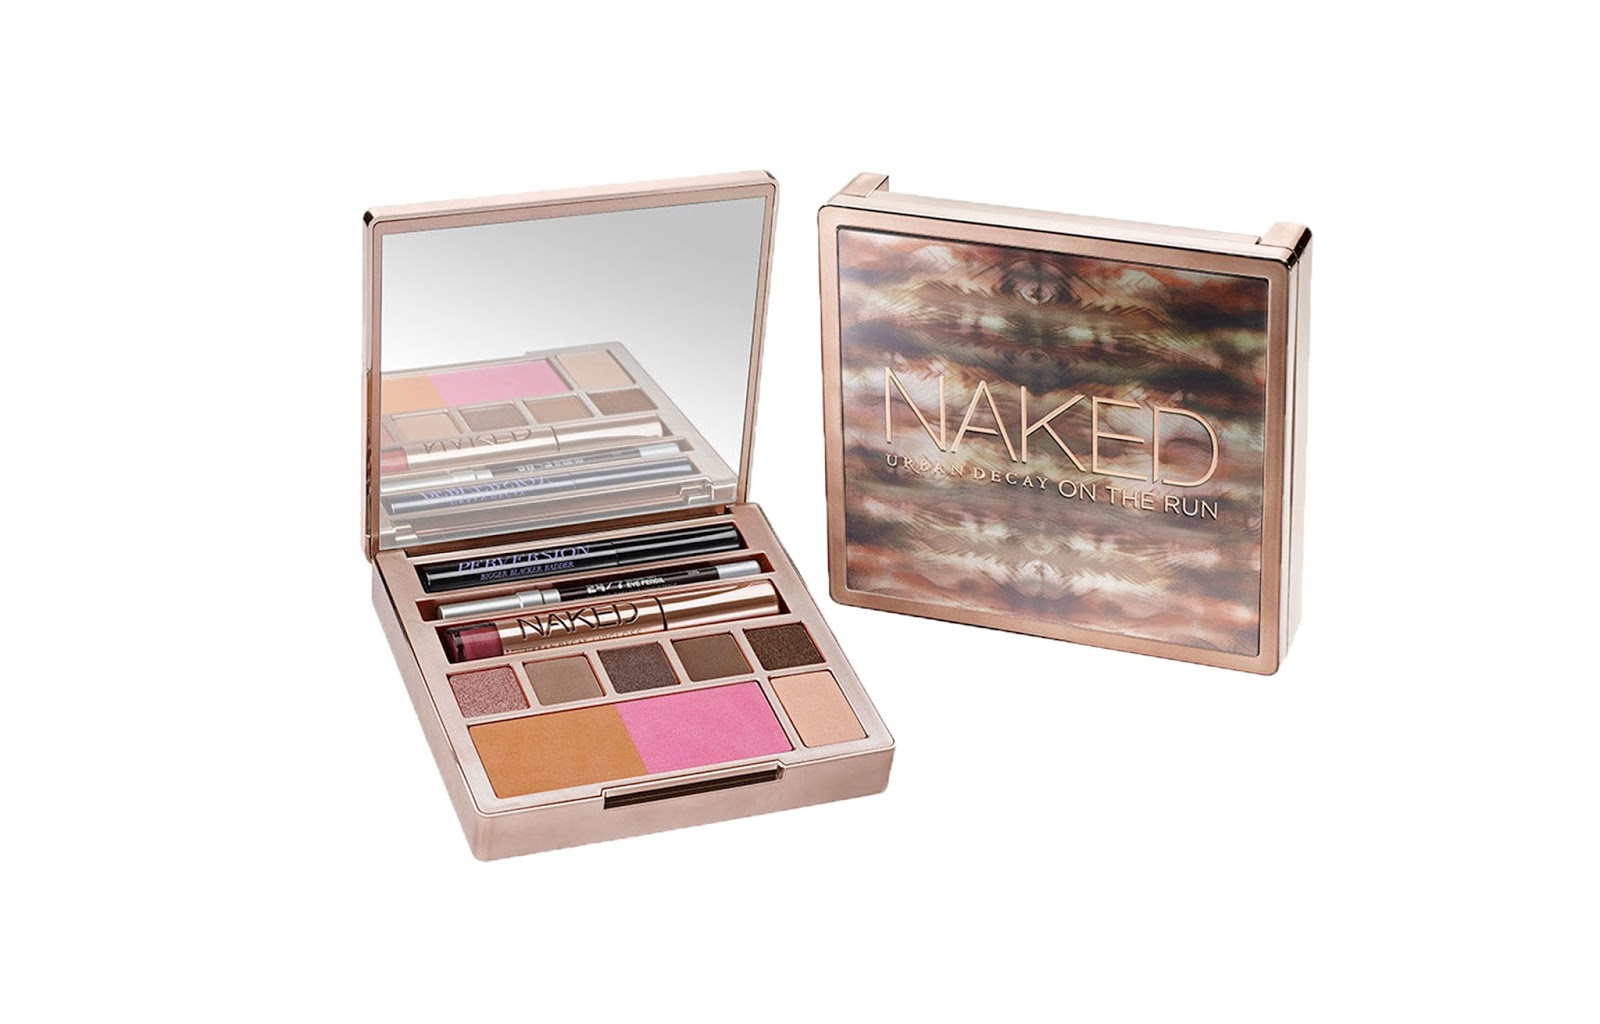 Dupes palettes Naked on the run Urban Decay